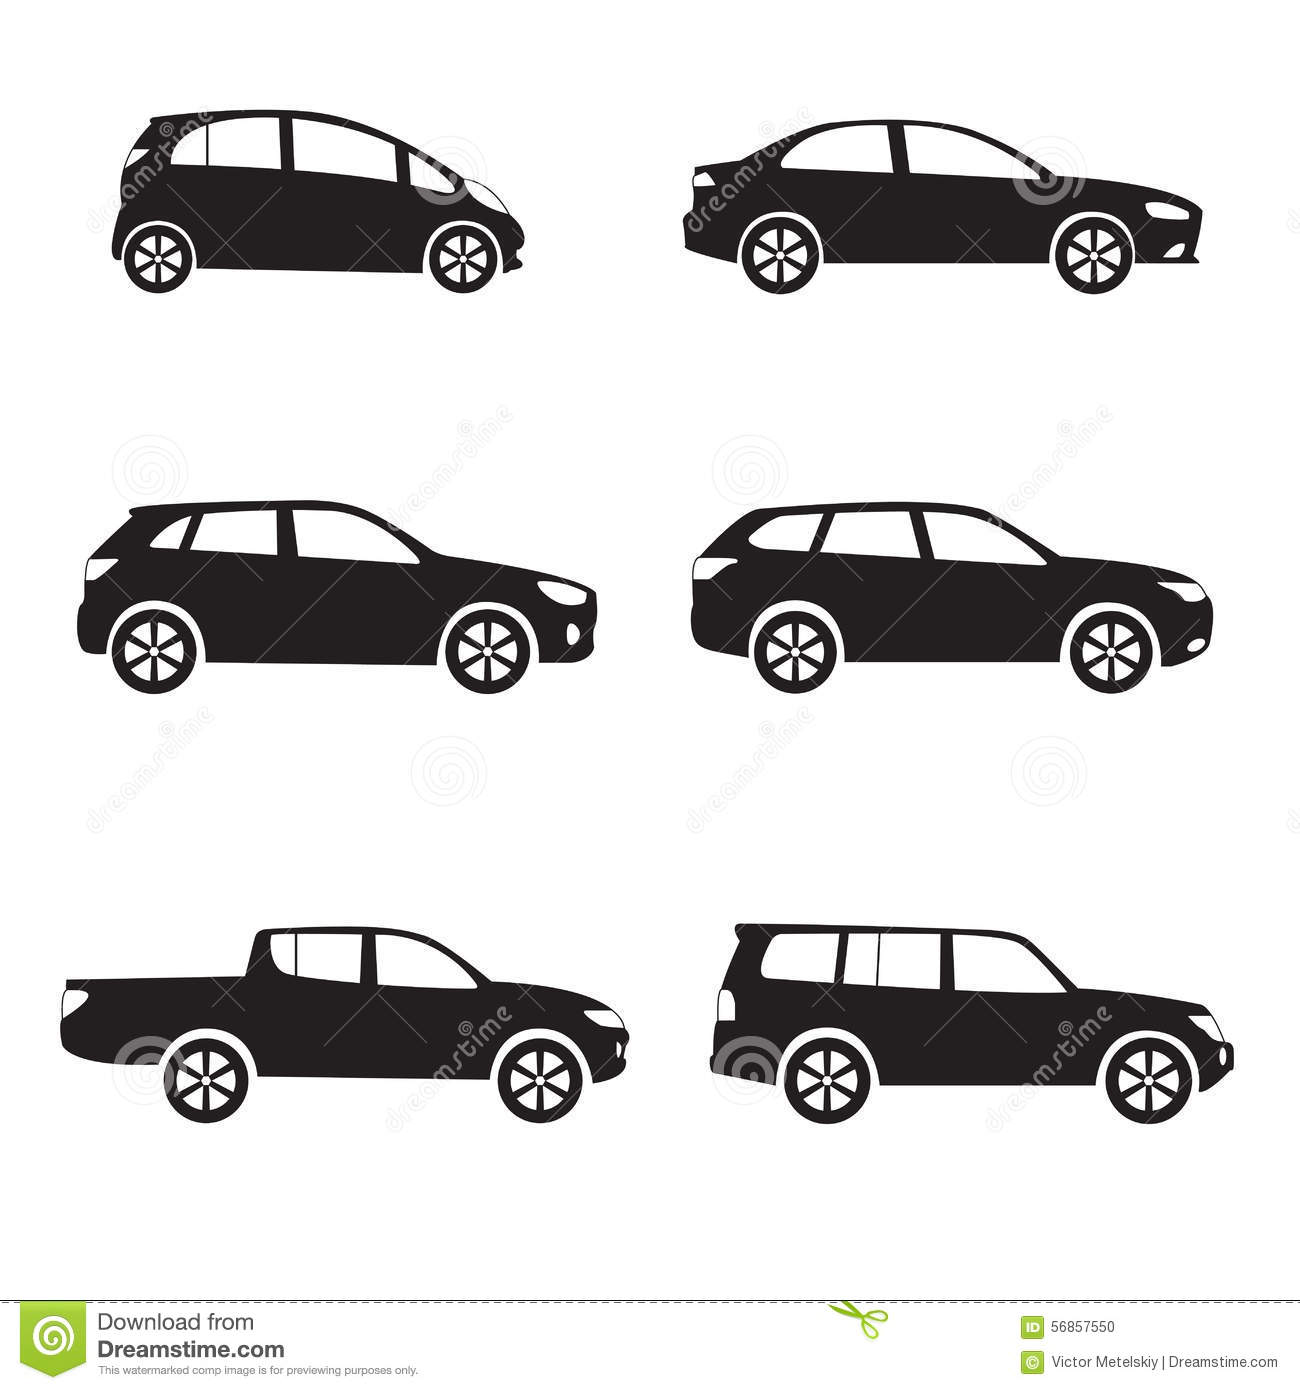 3 5 V 6 Vin H Firing Order as well Stock Illustration Car Vehicle Icon Set Different Vector Car Form Cars Isolated White Background Illustration Image56857550 in addition Stock Illustration Classic Car Drawing Simple Image Vintage Moving Speed Image75059602 as well Car Guard Shield Sign Collision Insurance 509034244 further Stock Images Car Coloring Page Illustration Children Image37874844. on automotive illustrations